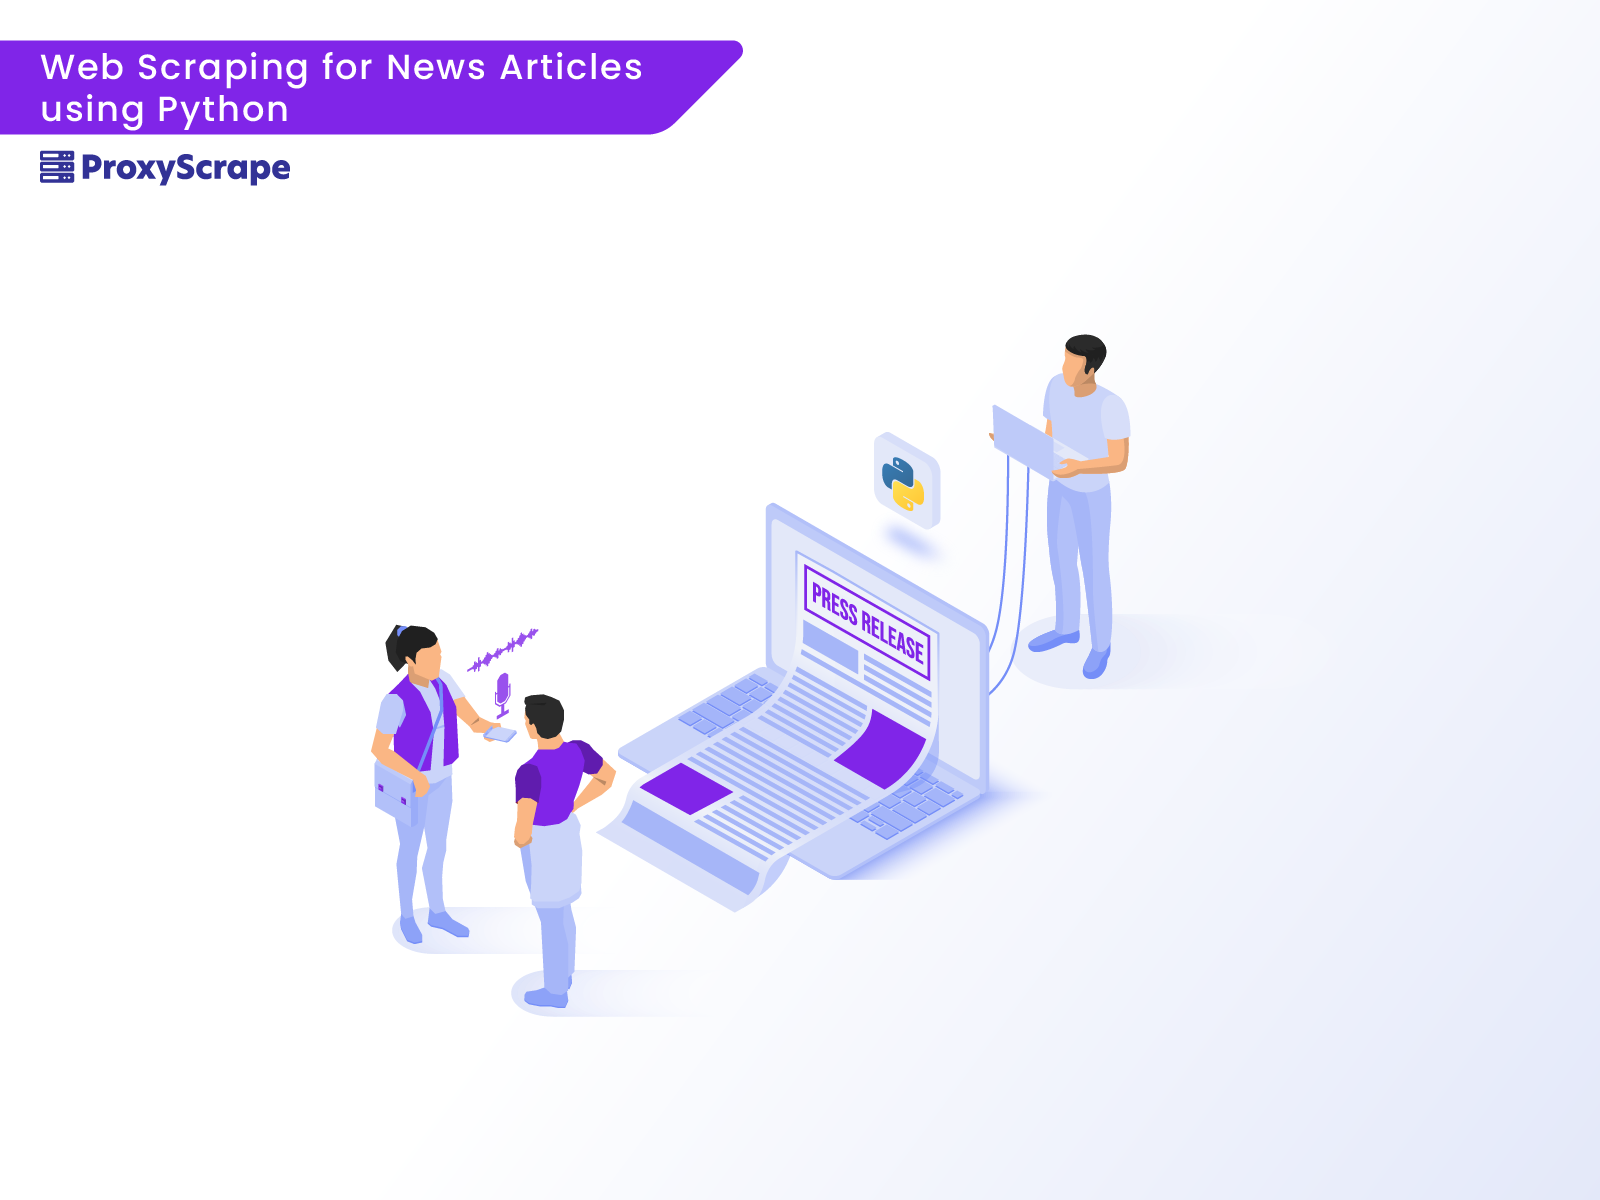 Web Scraping for News Articles using Python